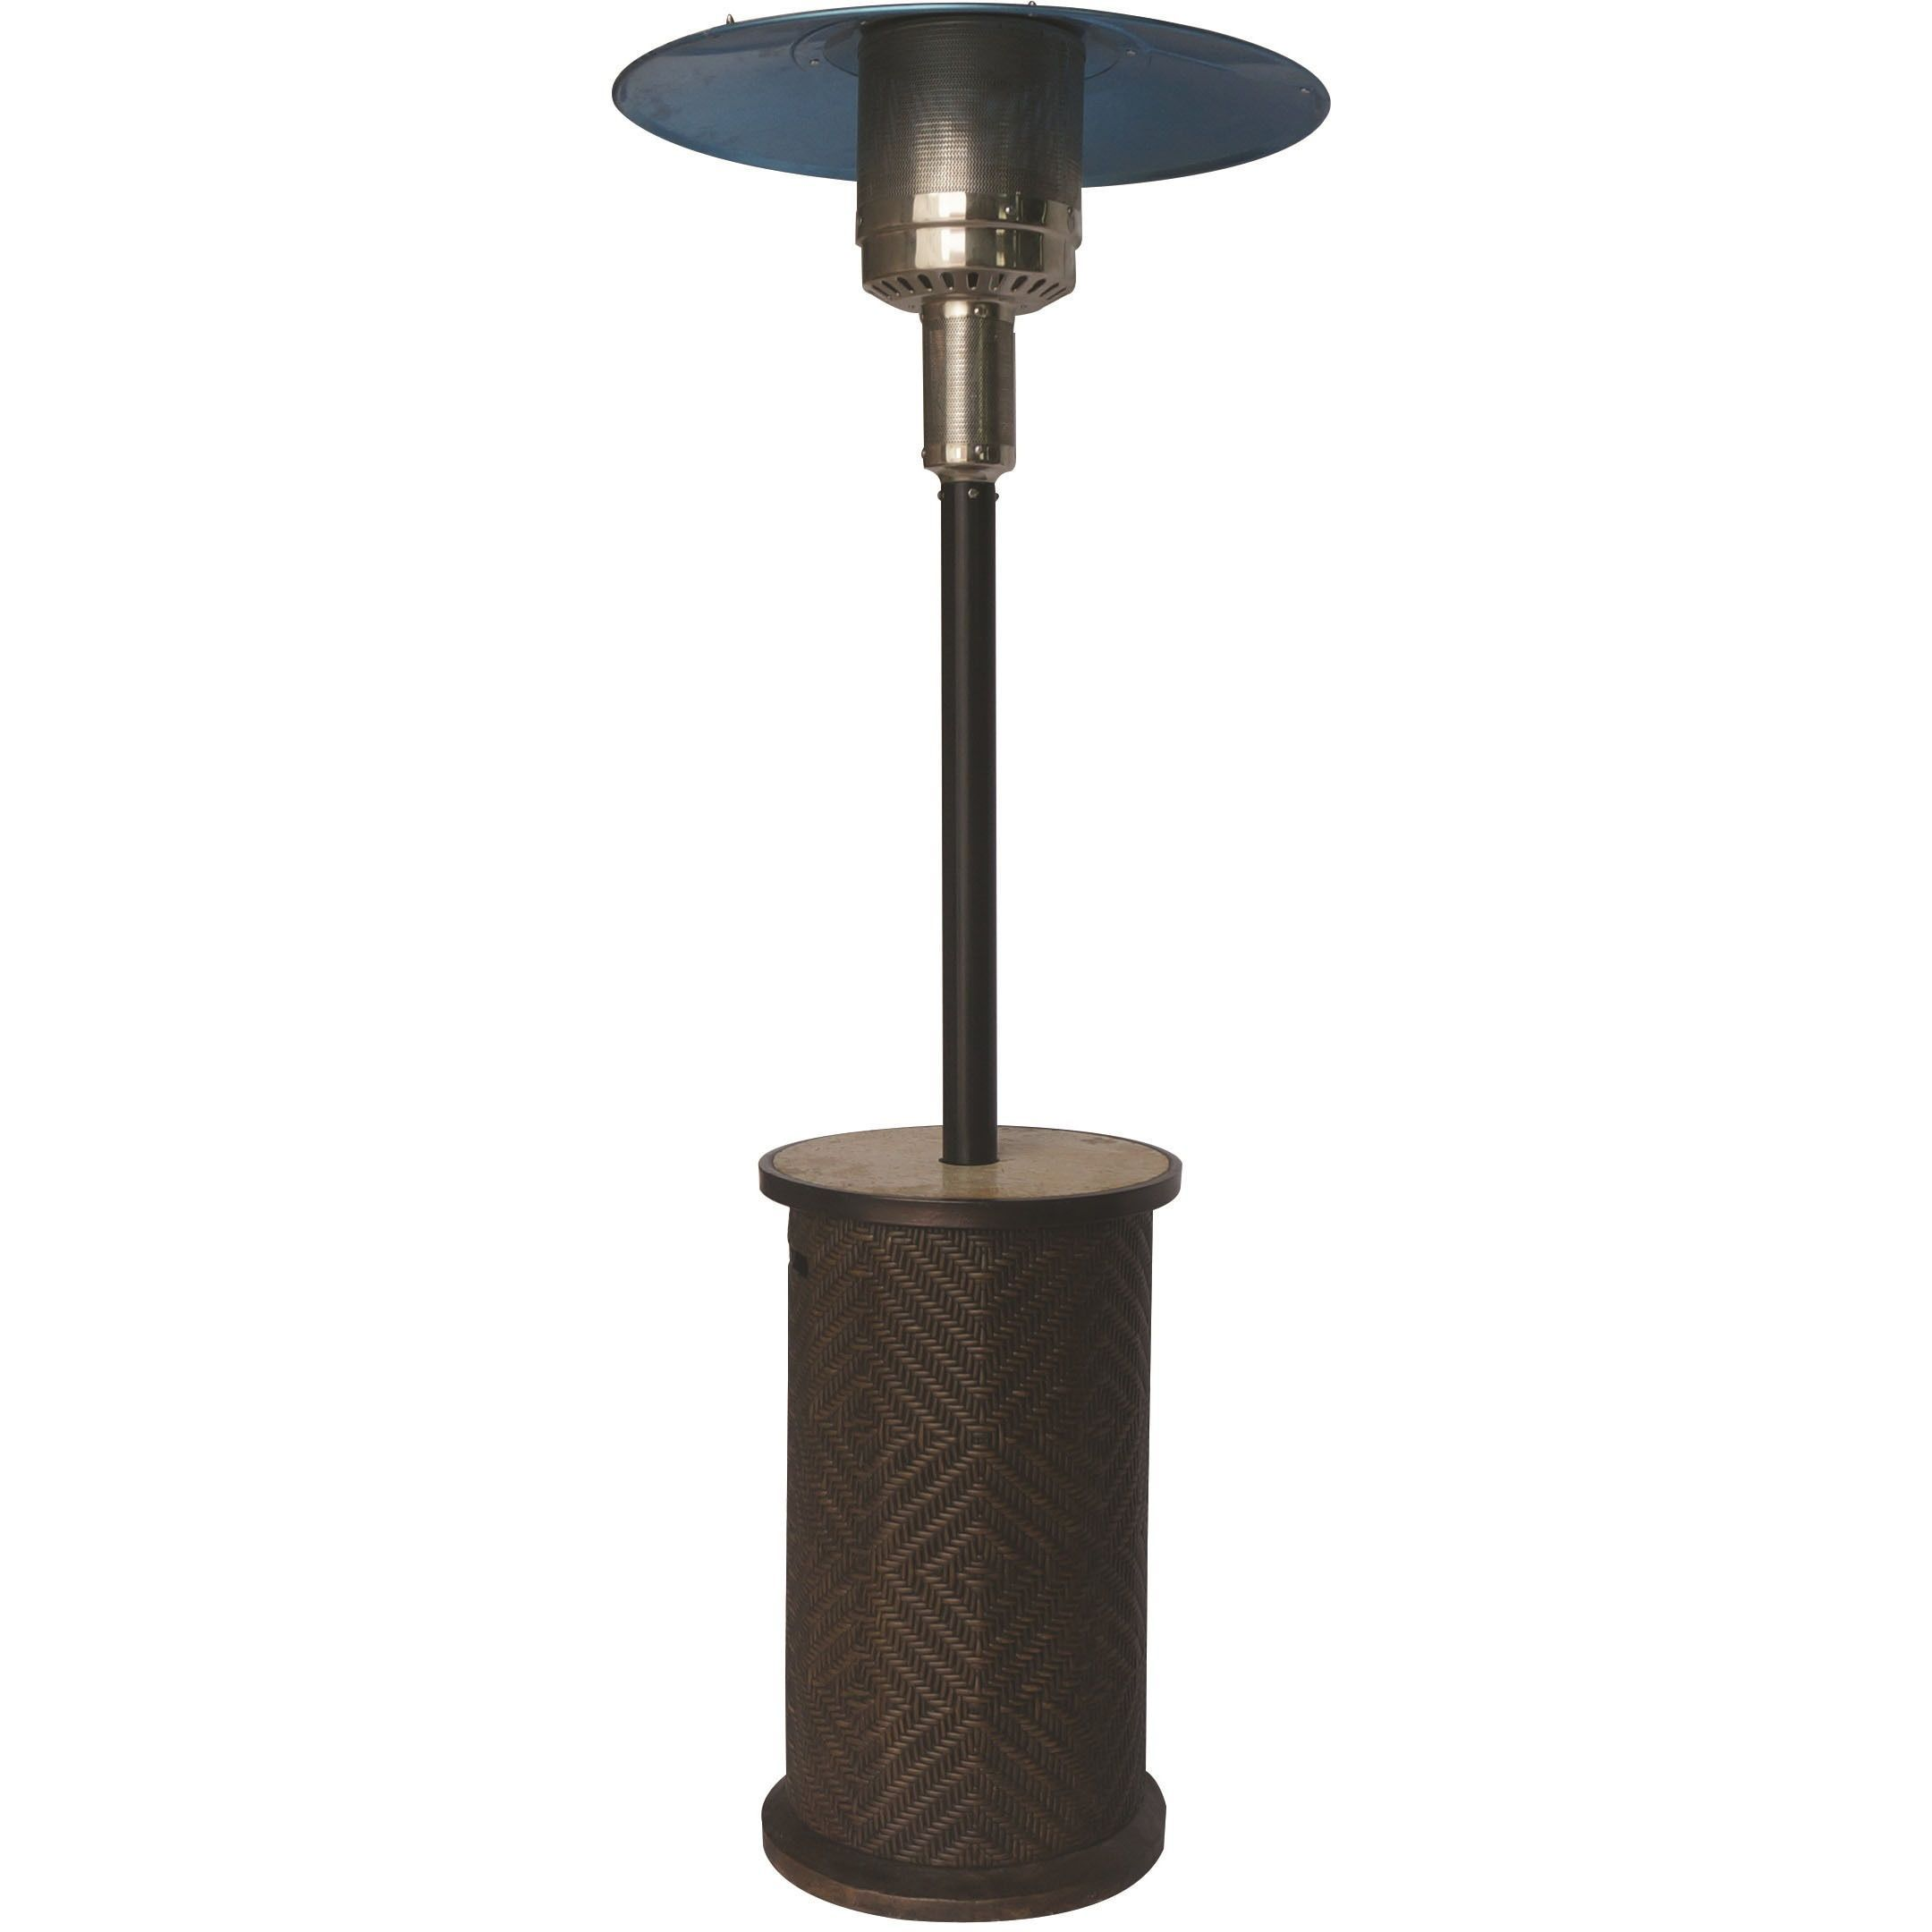 Bond Portofino Patio Heater Silver Steel Stainless Outdoor Décor